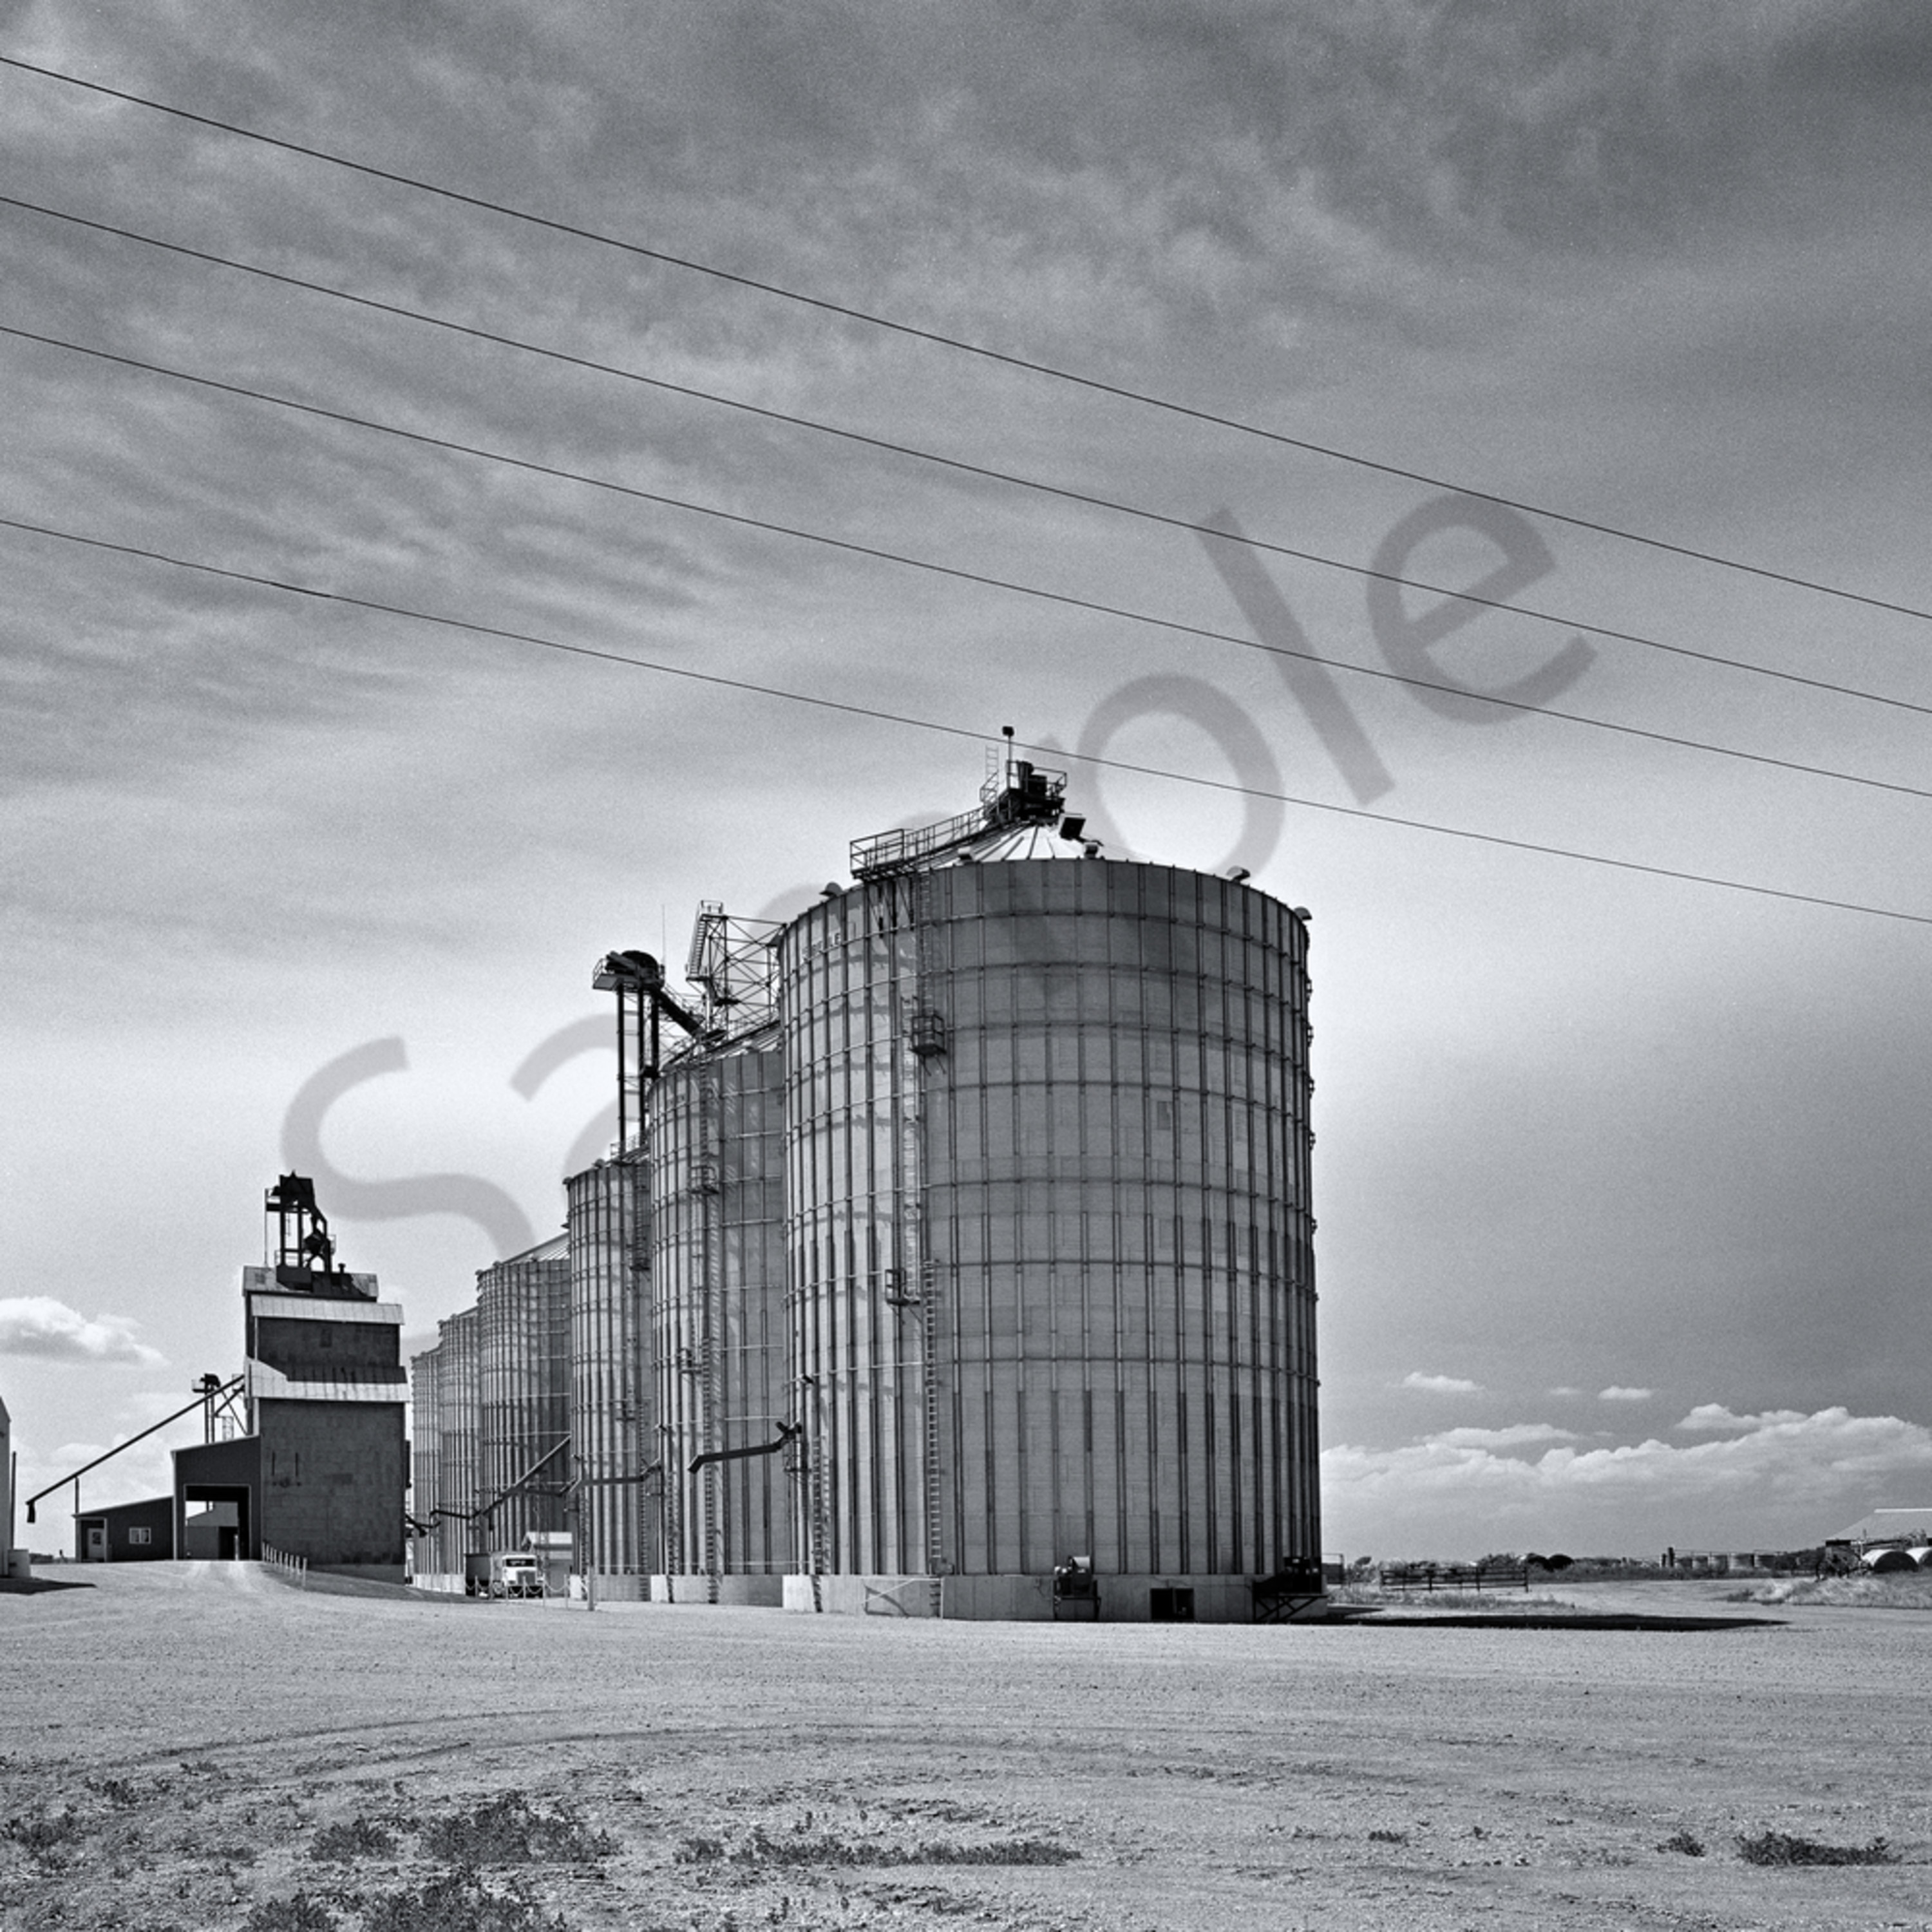 Sis silos   eastern south dakota czvrrf